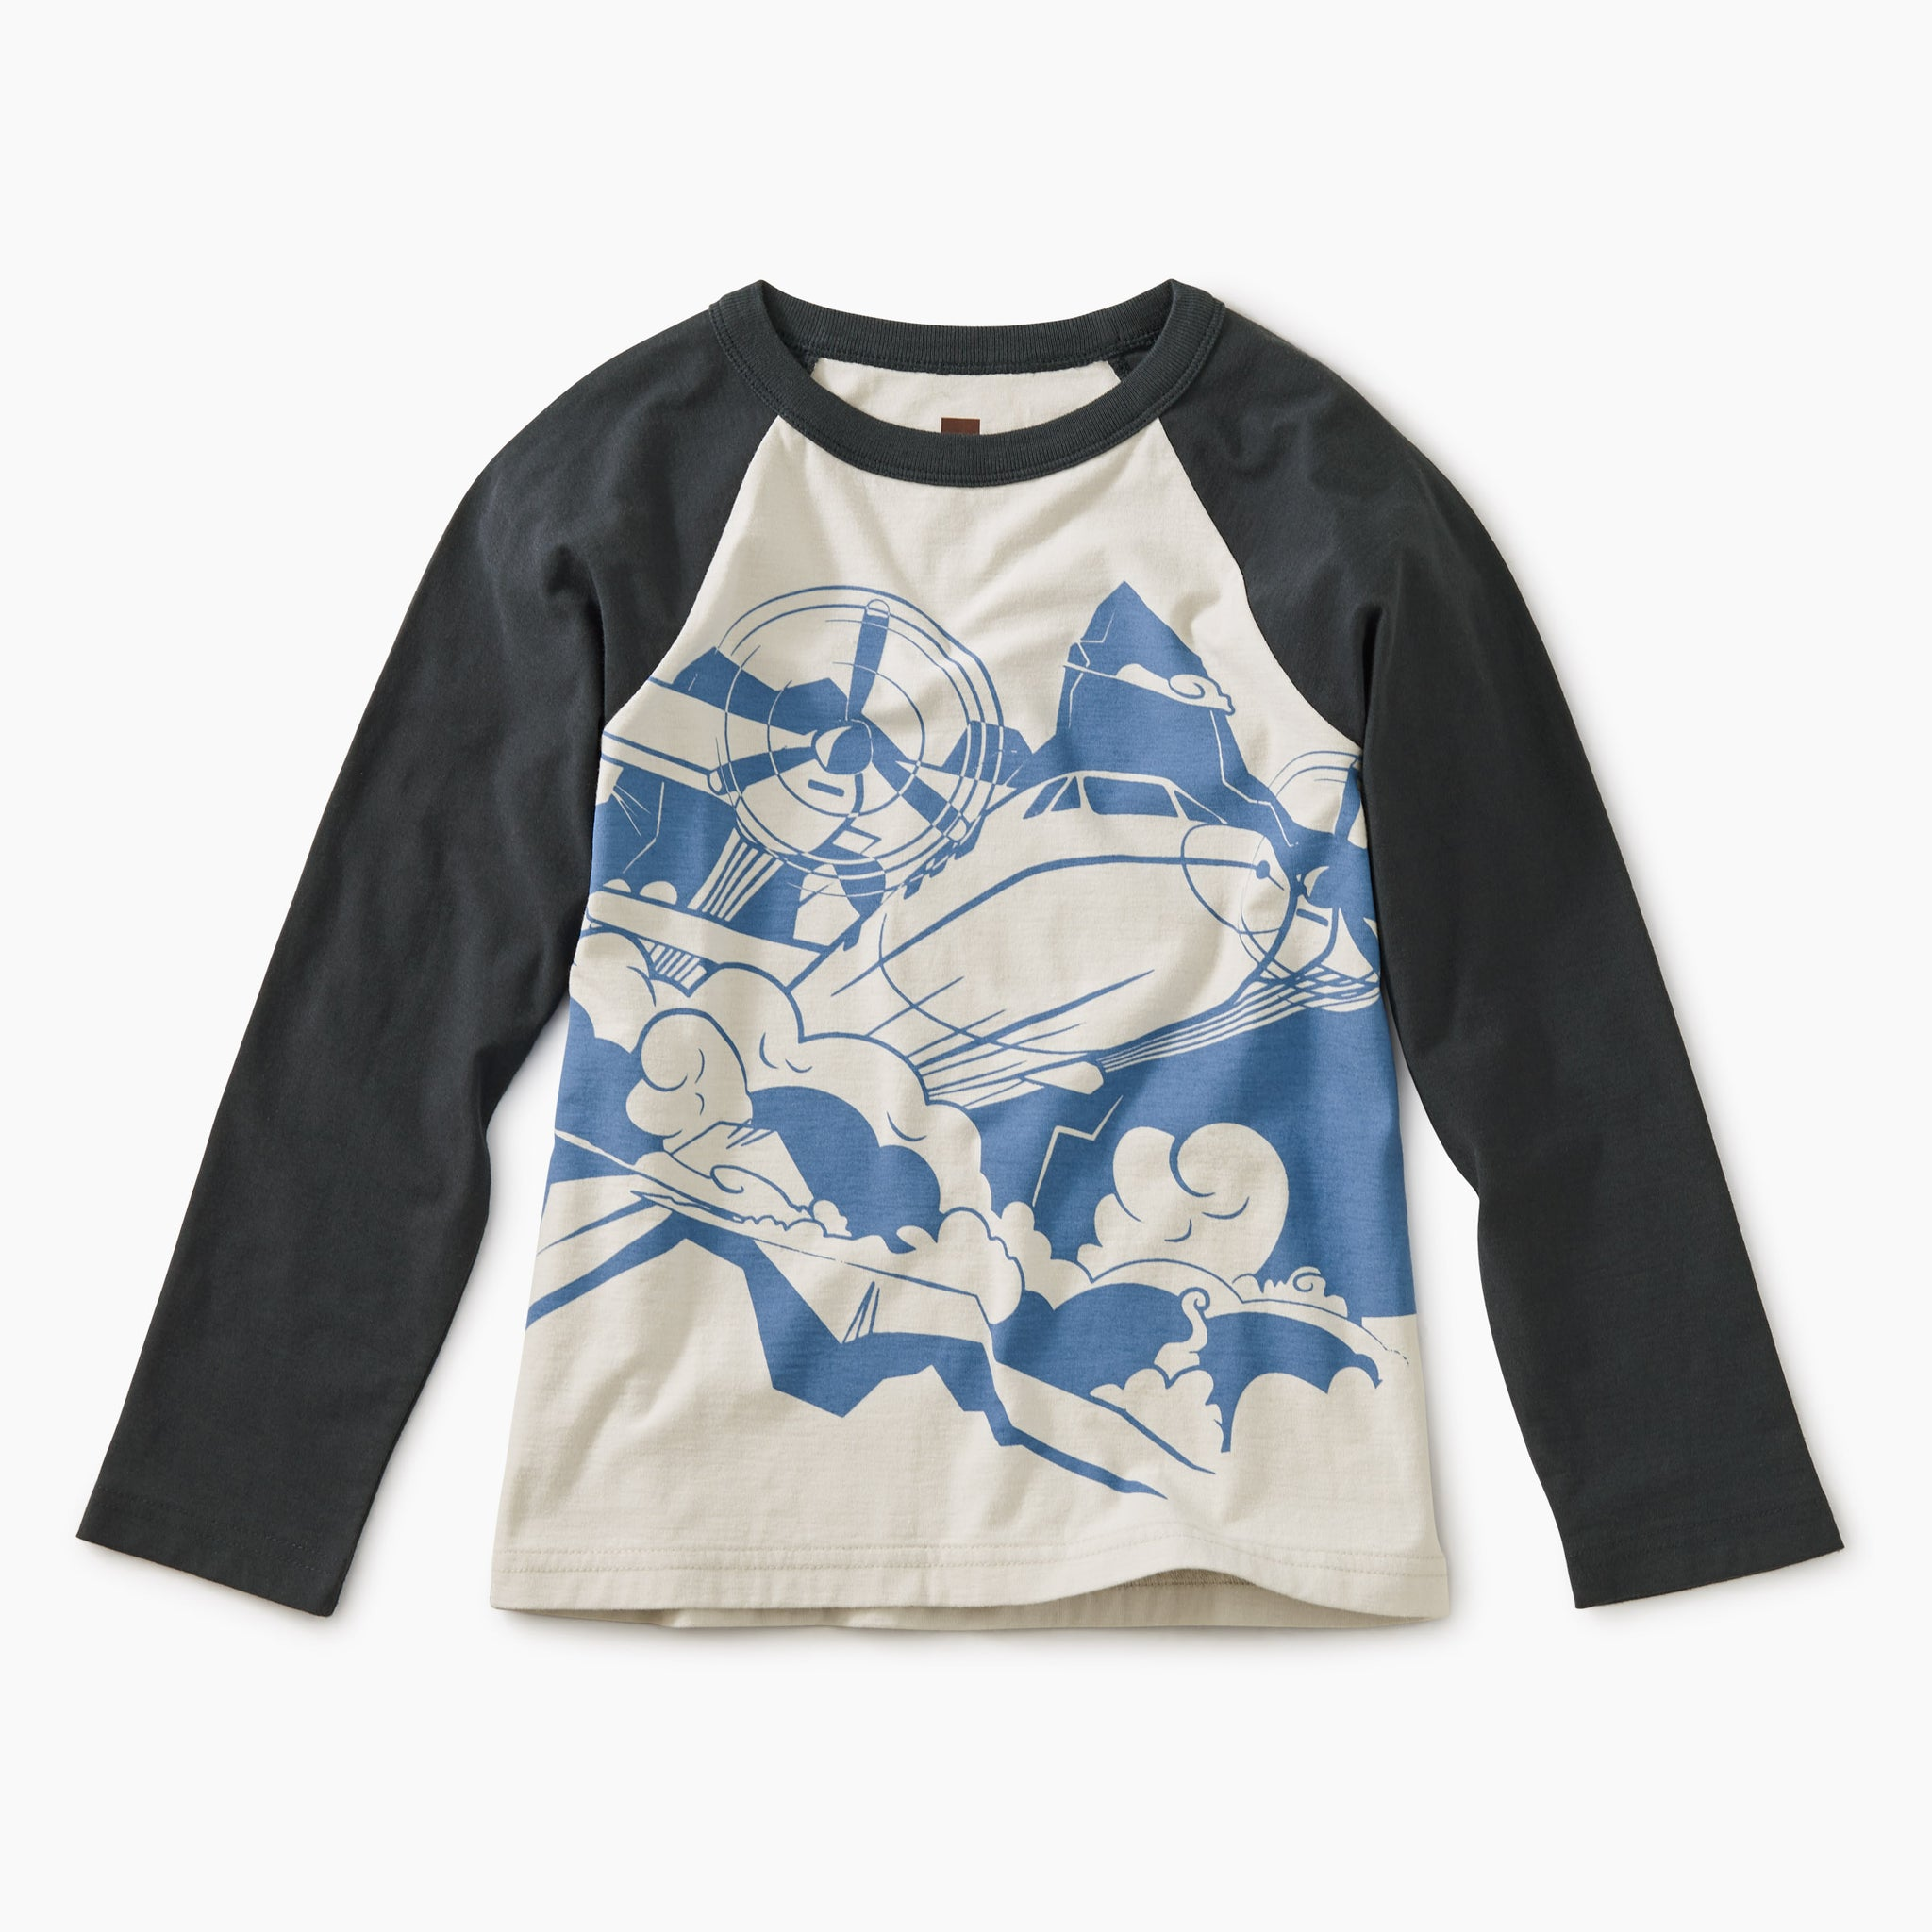 Graphic Raglan Tee - Turbo Prop